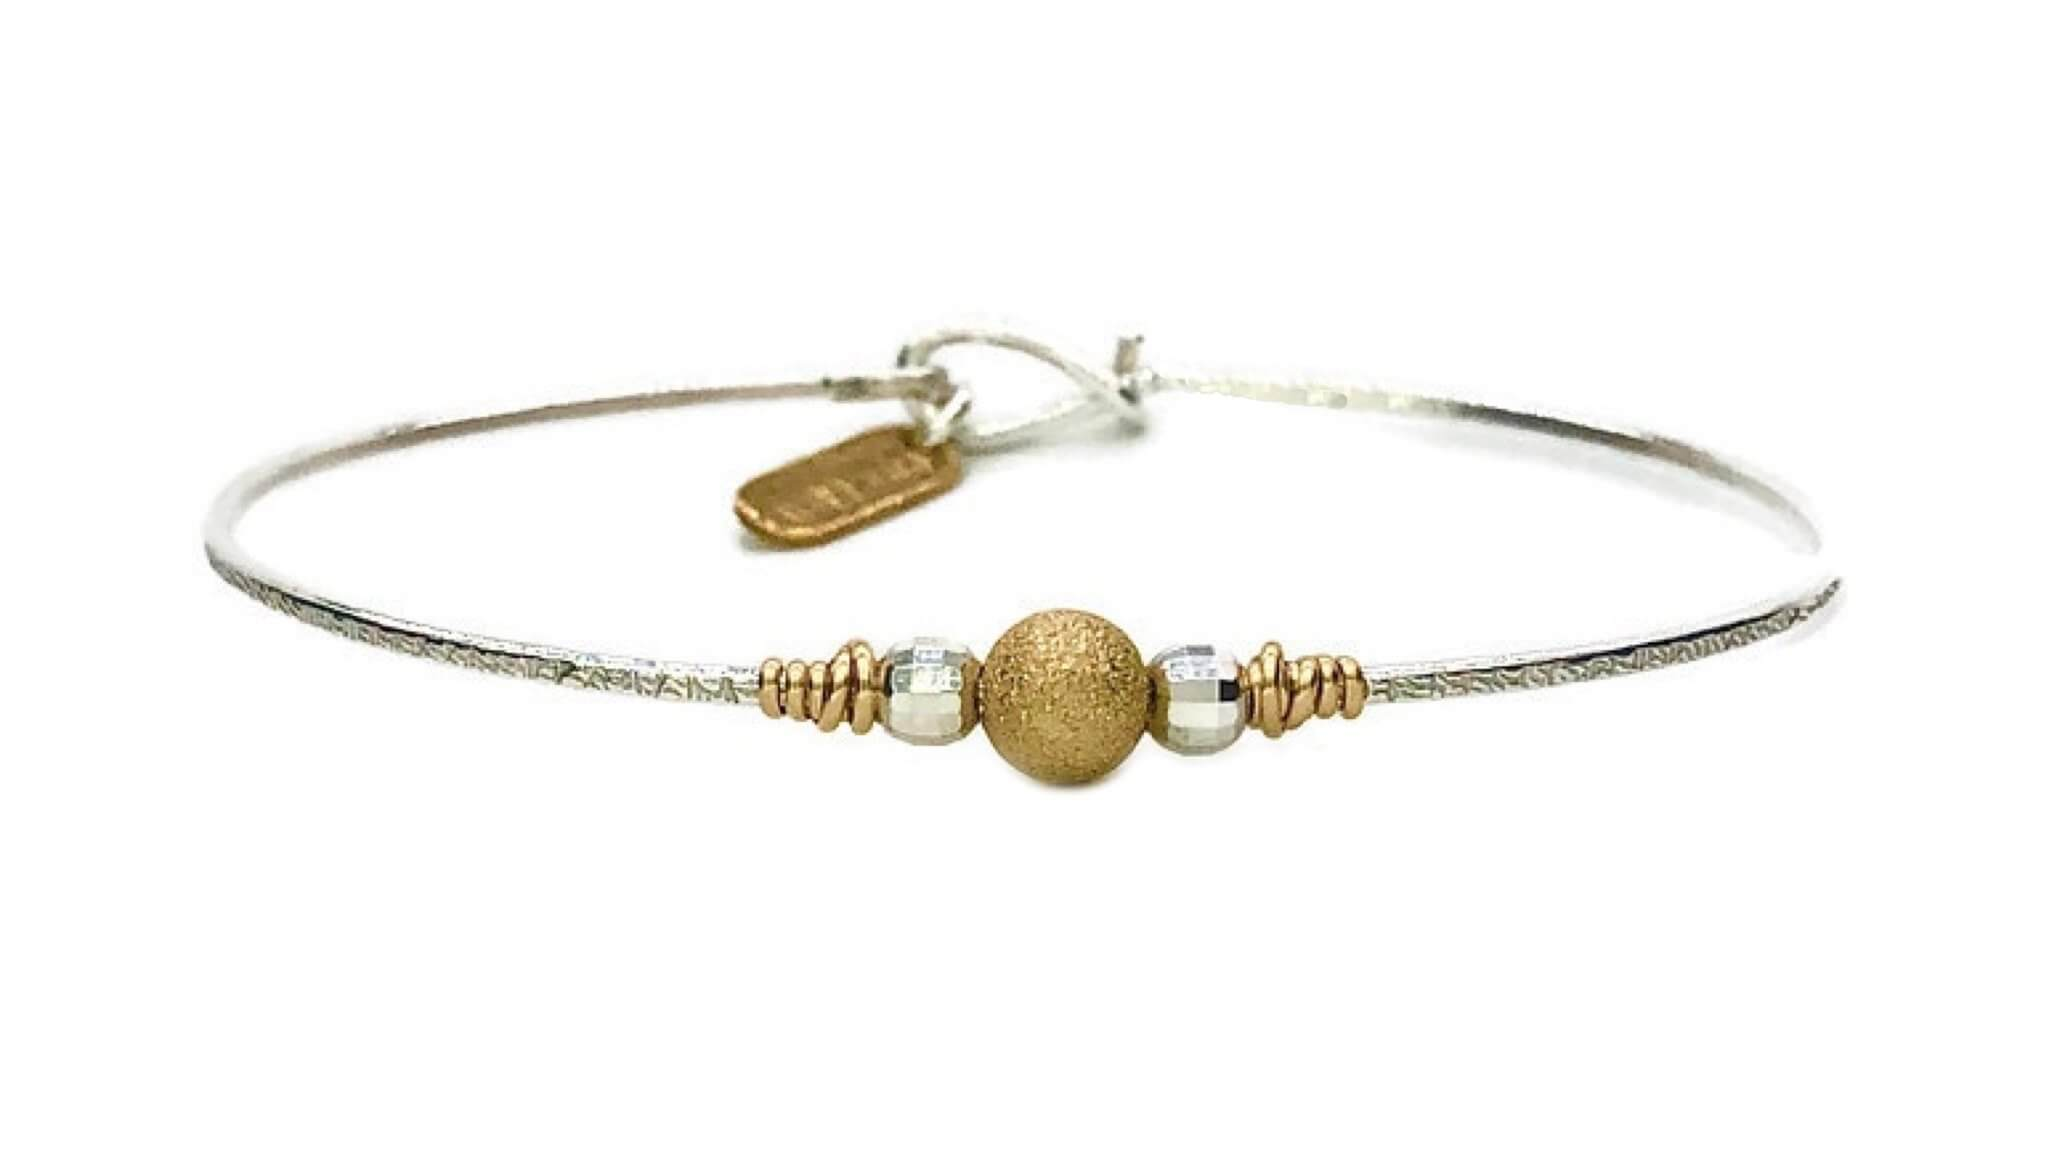 Harmony Bracelet - Earth Grace Artisan Jewelry